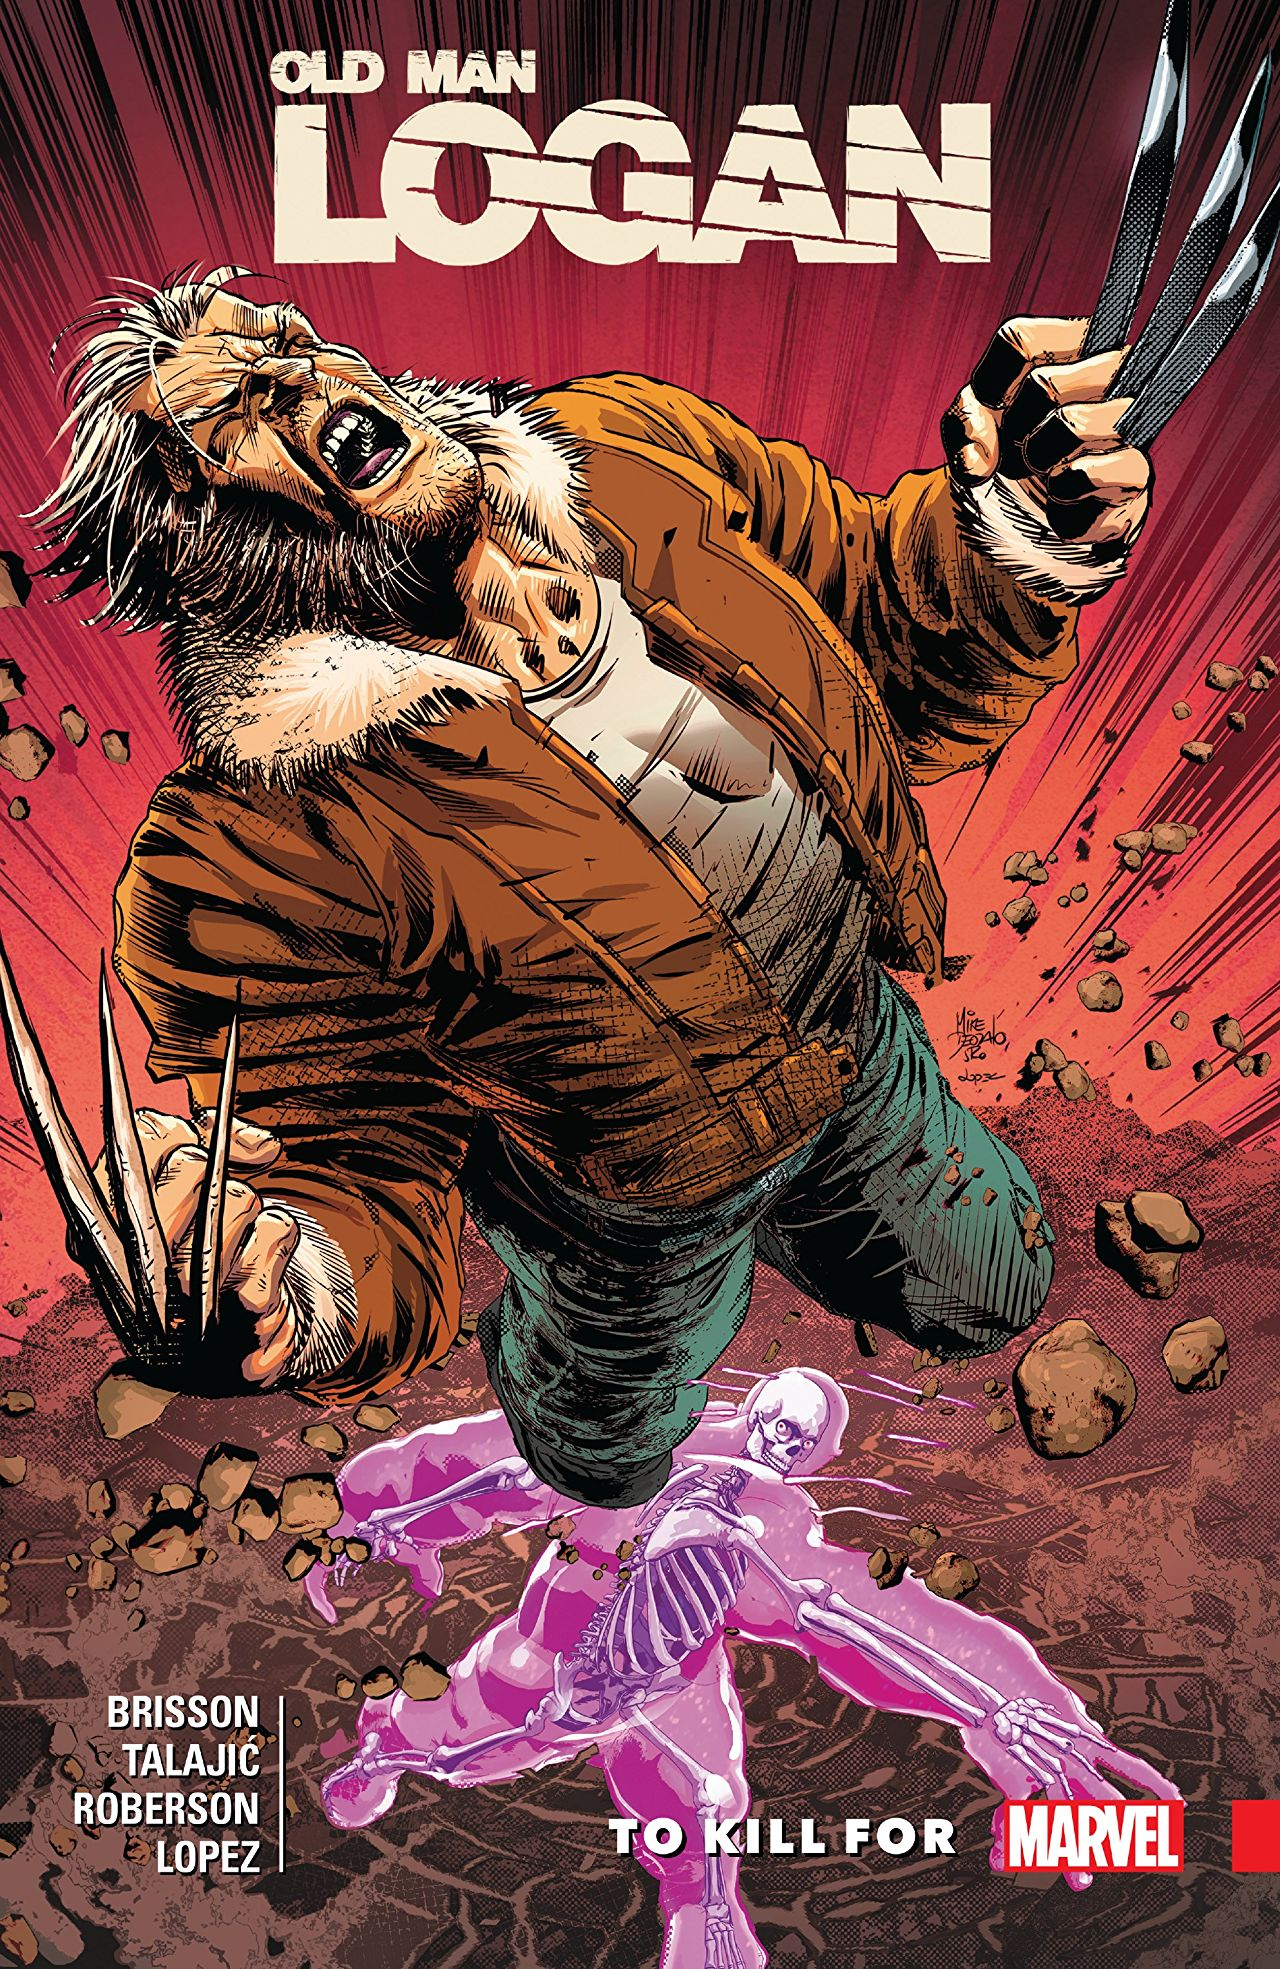 Dour as ever, Old Man Logan is back in this all new (but not uncanny) collection!